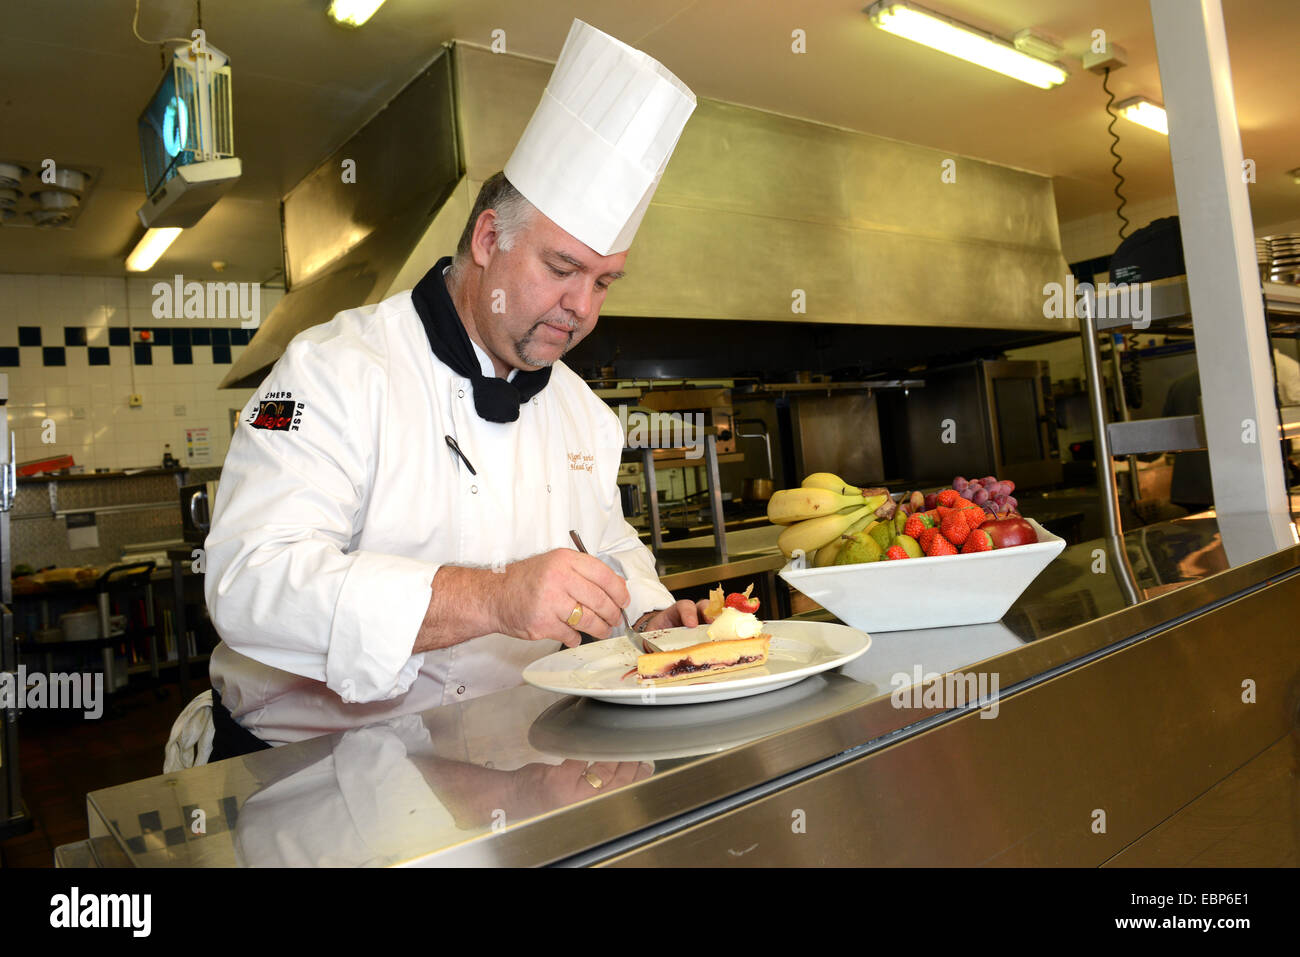 Nigel Davis Head chef at Holiday Inn in Telford cooking catering food kitchen professional - Stock Image